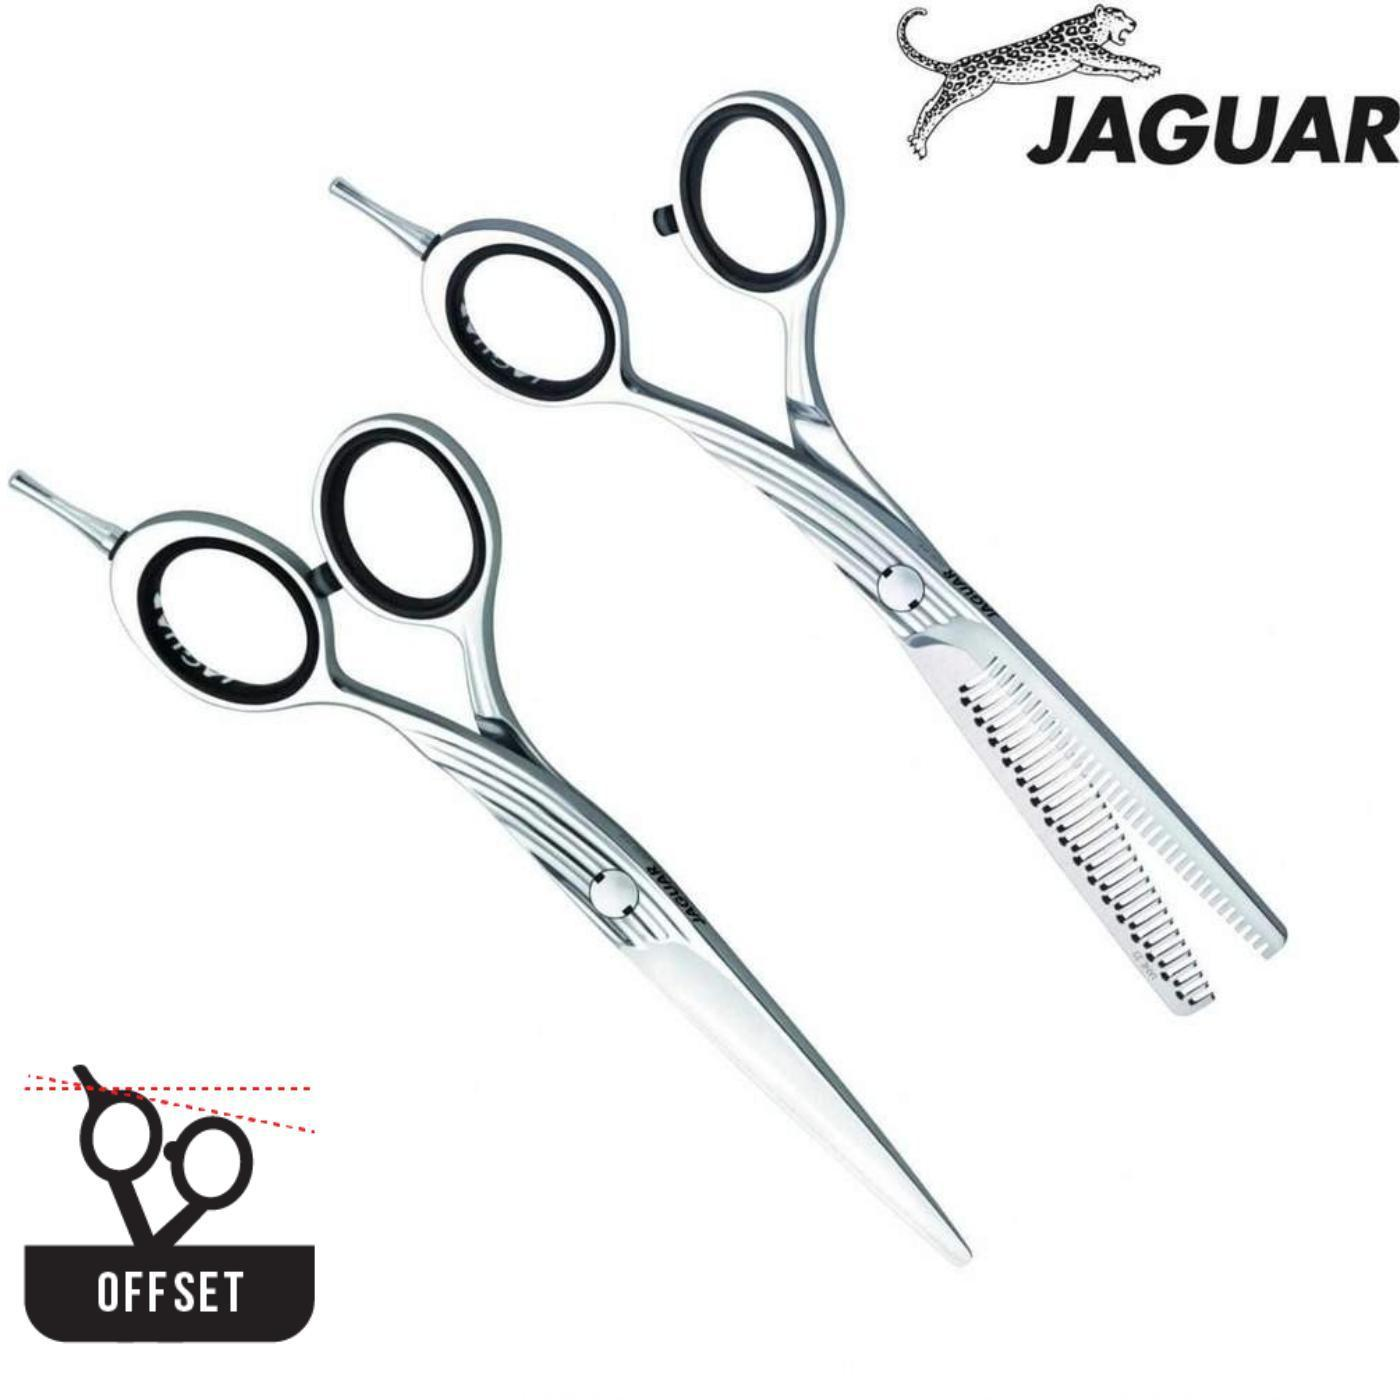 Jaguar Gold Line Lane Offset Cutting & Thinning Set - Japan Scissors